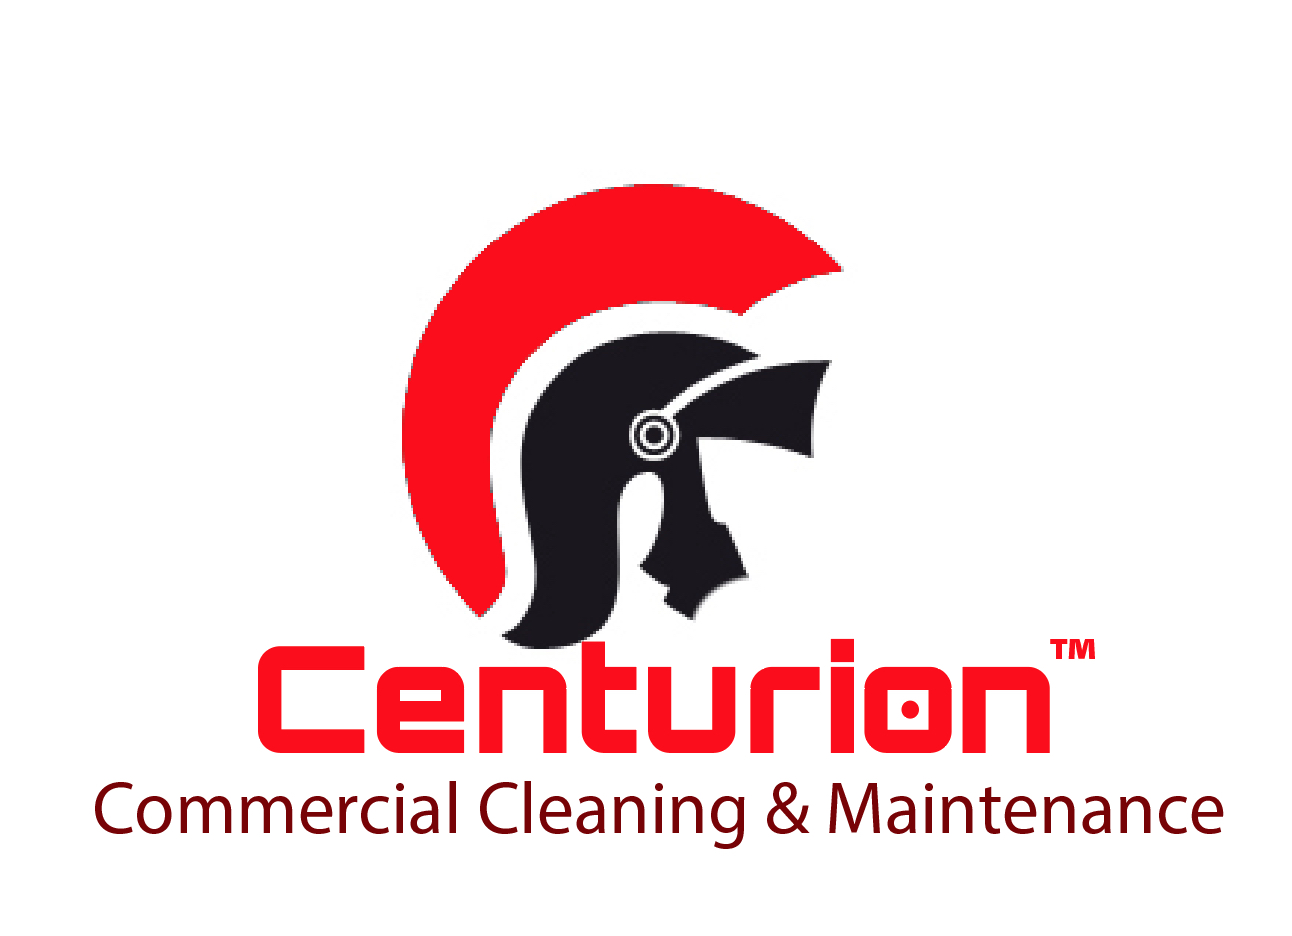 Centurion and Maintenance Cleaning